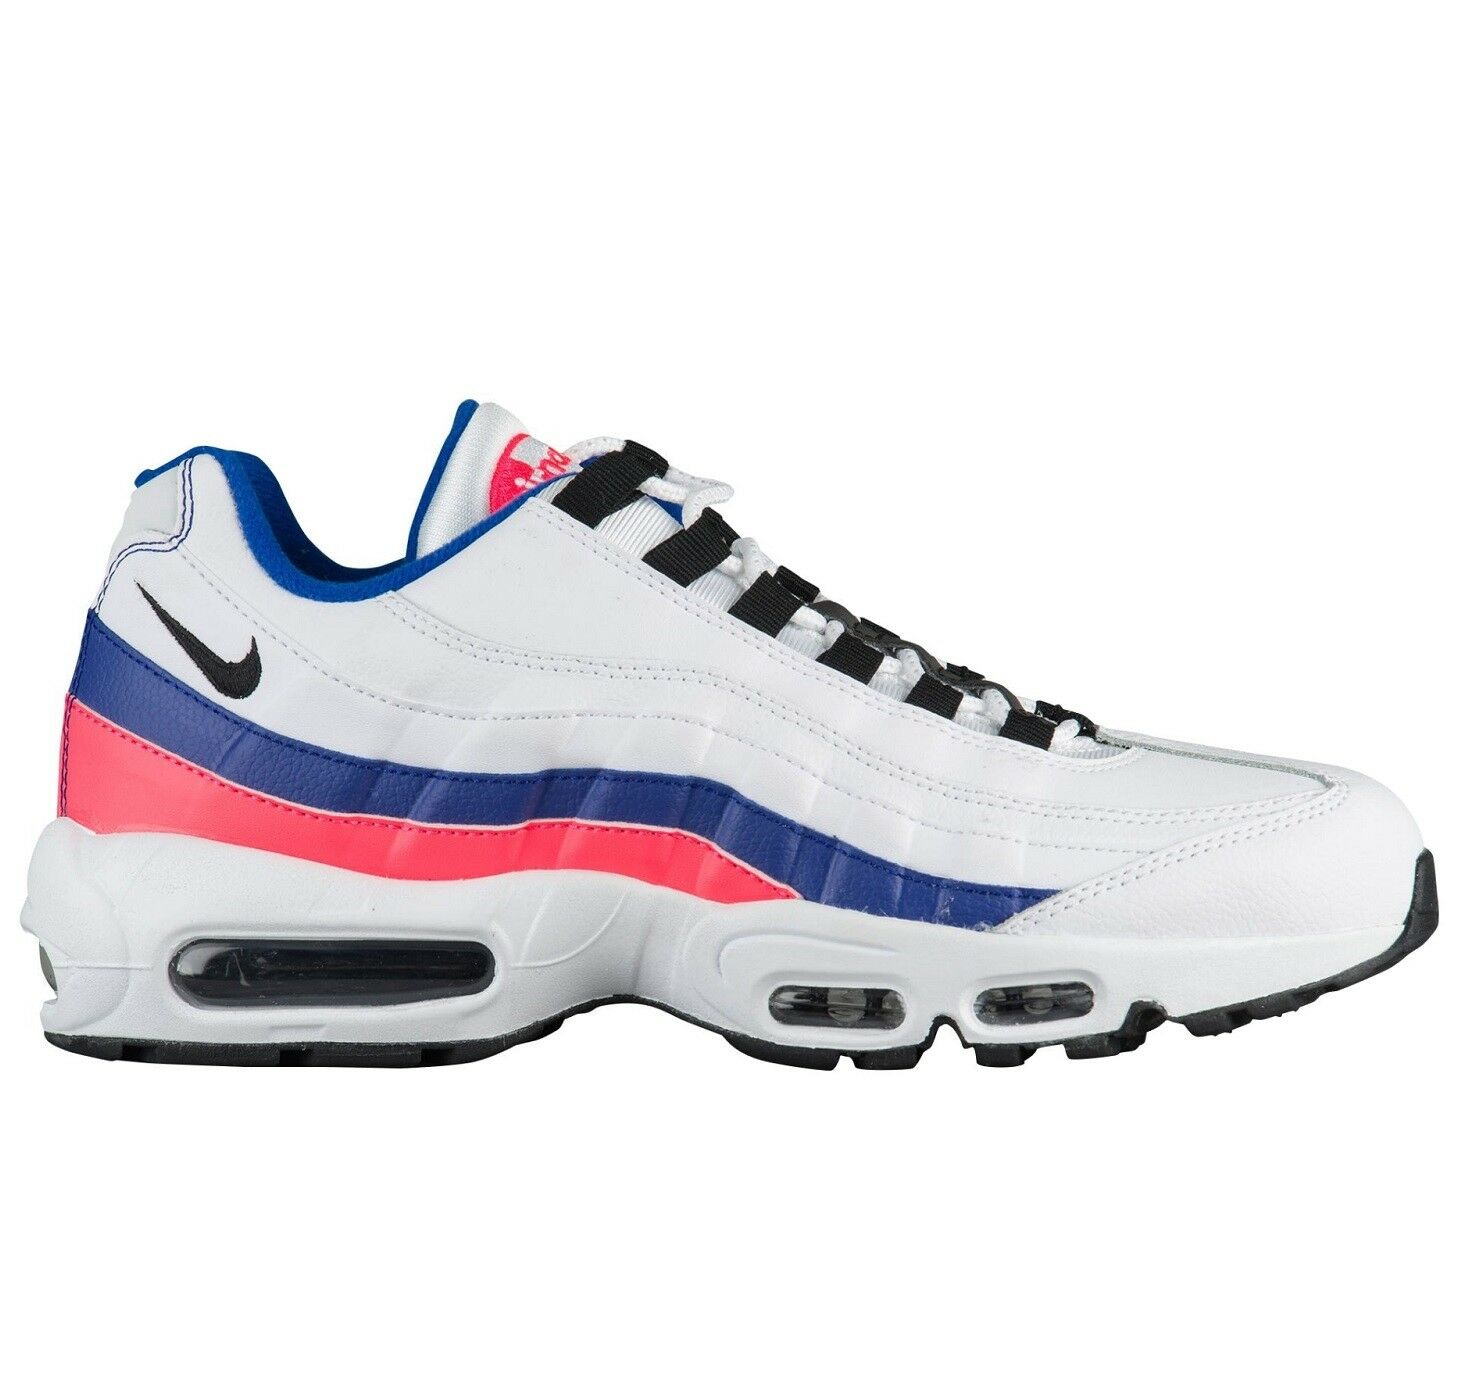 Nike Air Max 95 Essential Mens 749766-106 Ultramarine Solar Red Shoes Size 12